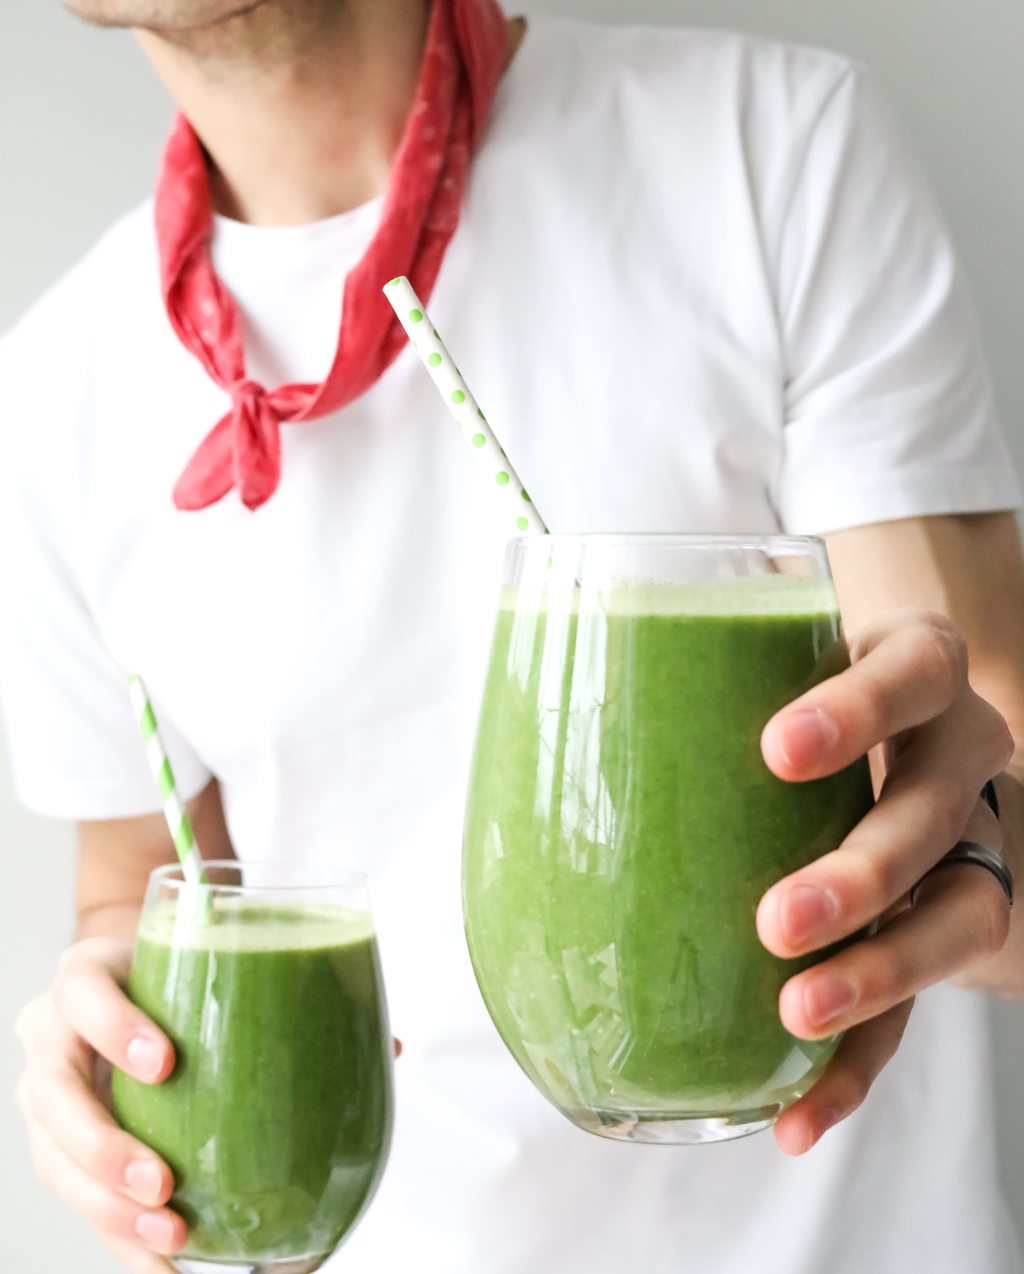 green vegan smoothie recipe wheatgrass health benefits kale